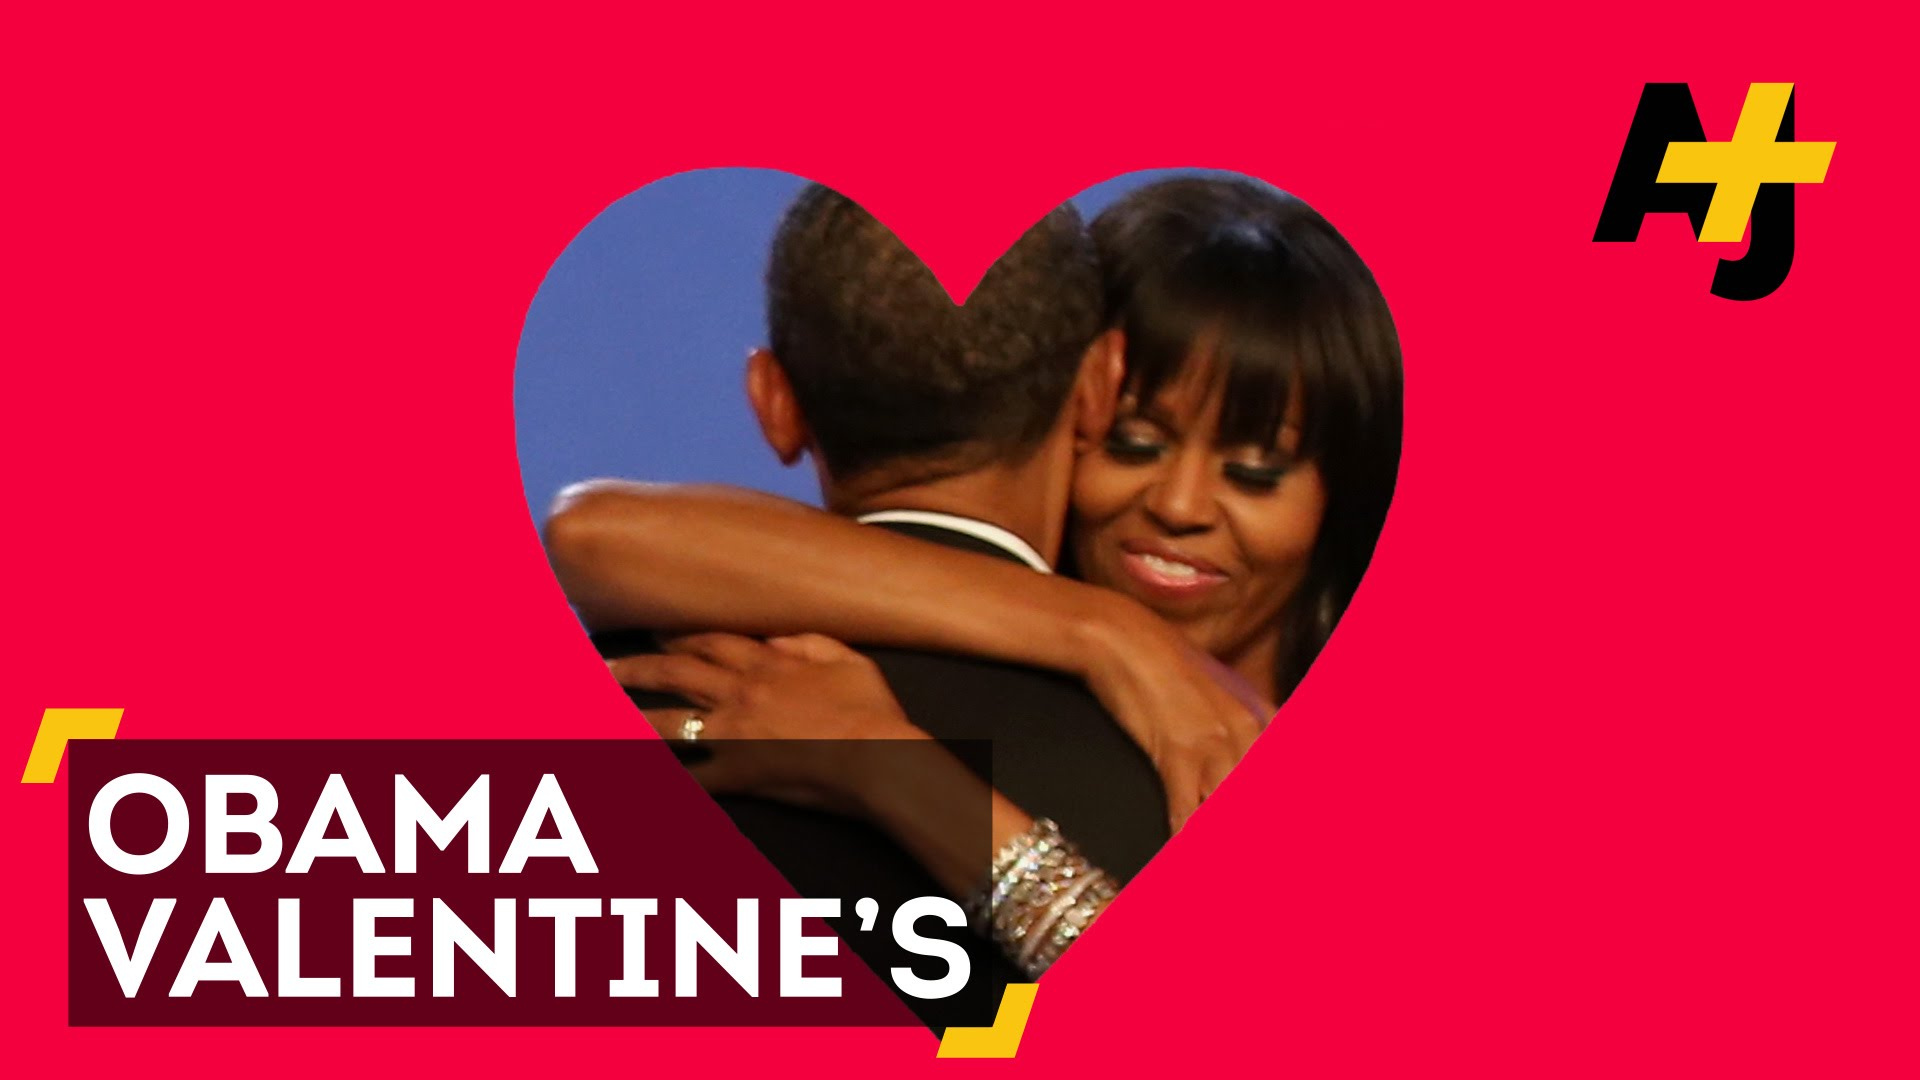 A Very Barack Obama Valentine's Day